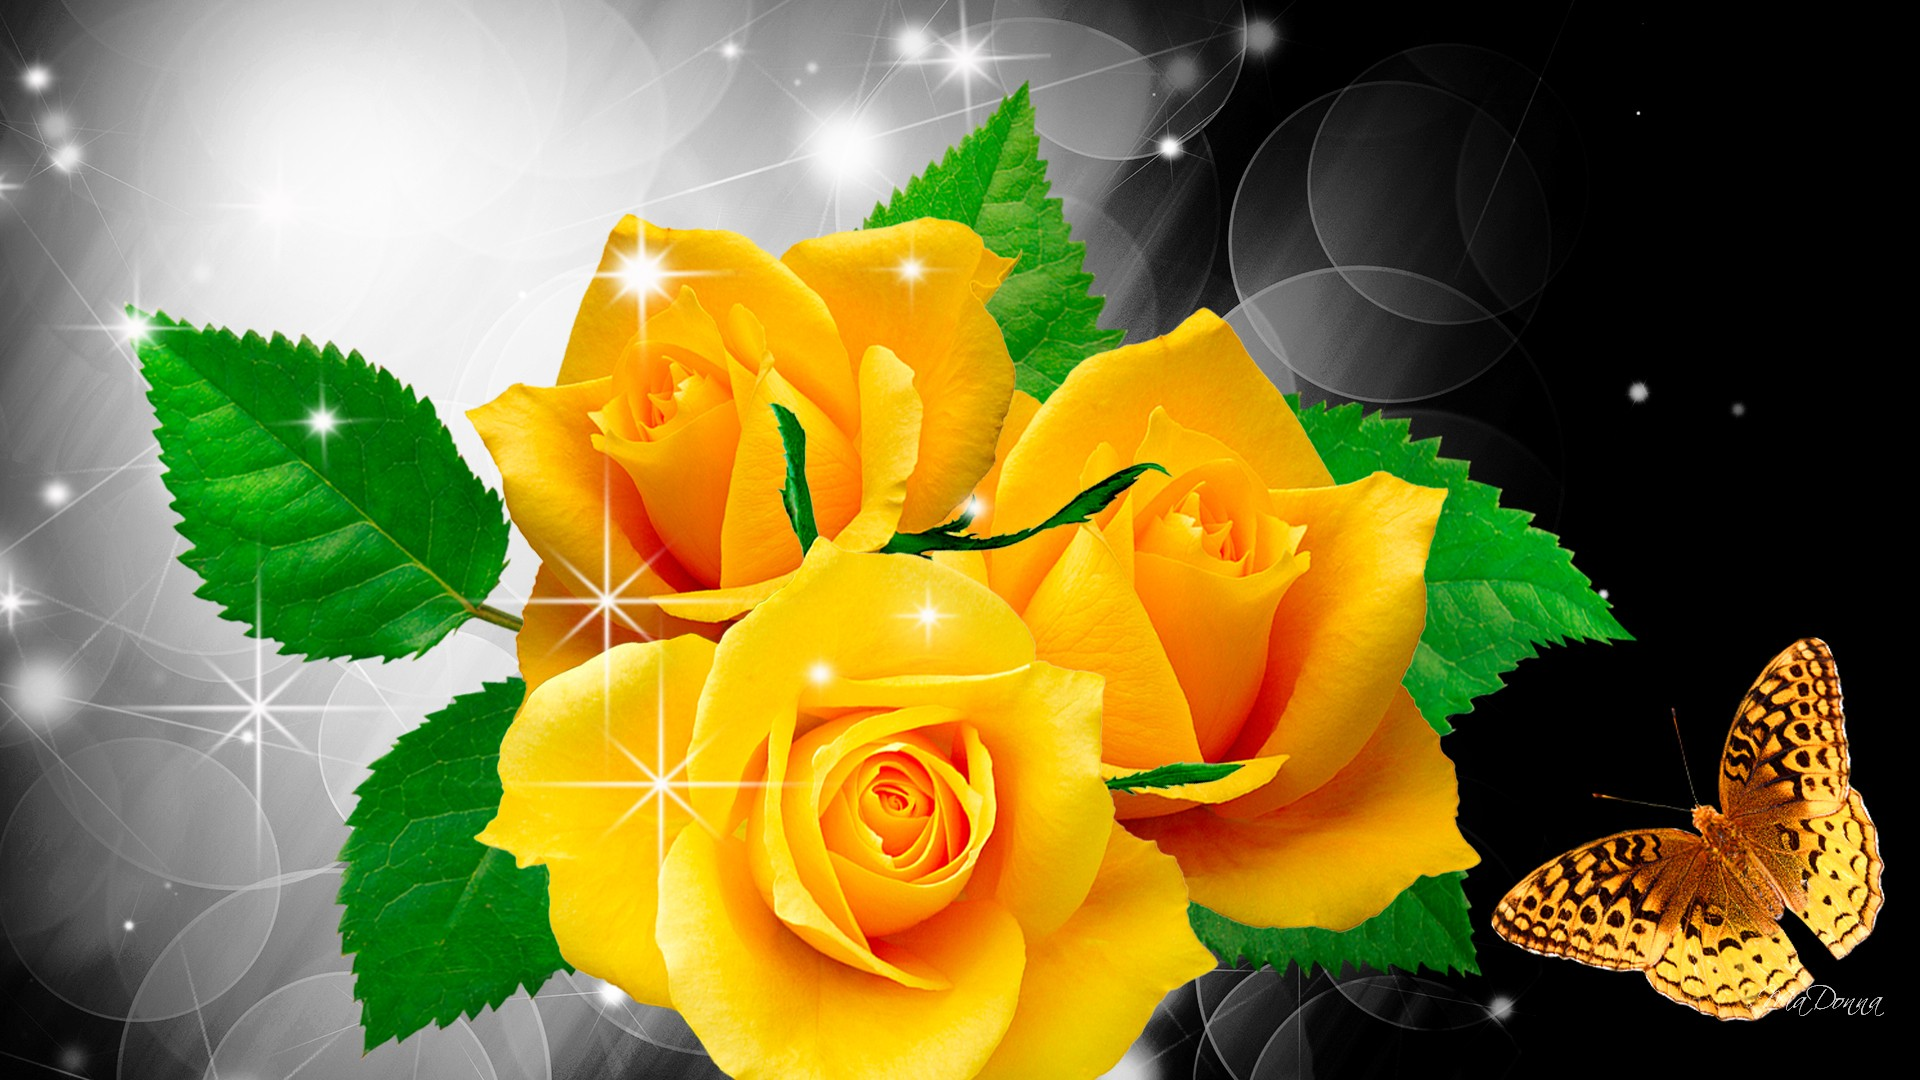 beautiful-rose-flowers-pictures-and-rose-flowers-wallpaper-wpc5802685